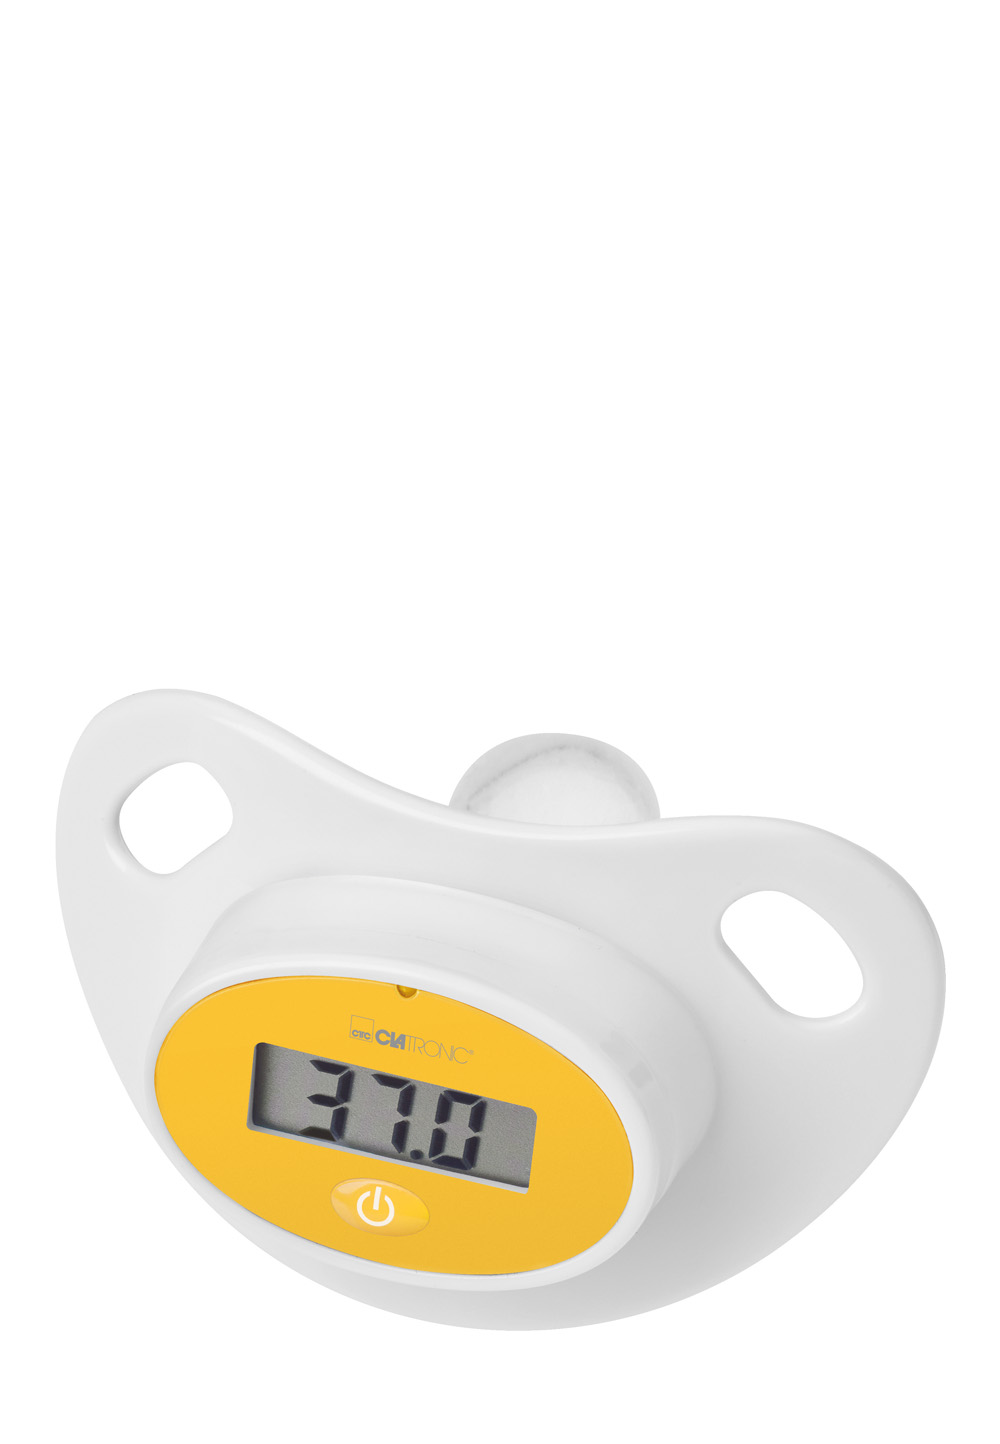 Clatronic Digitales Schnullerthermometer FT 3618